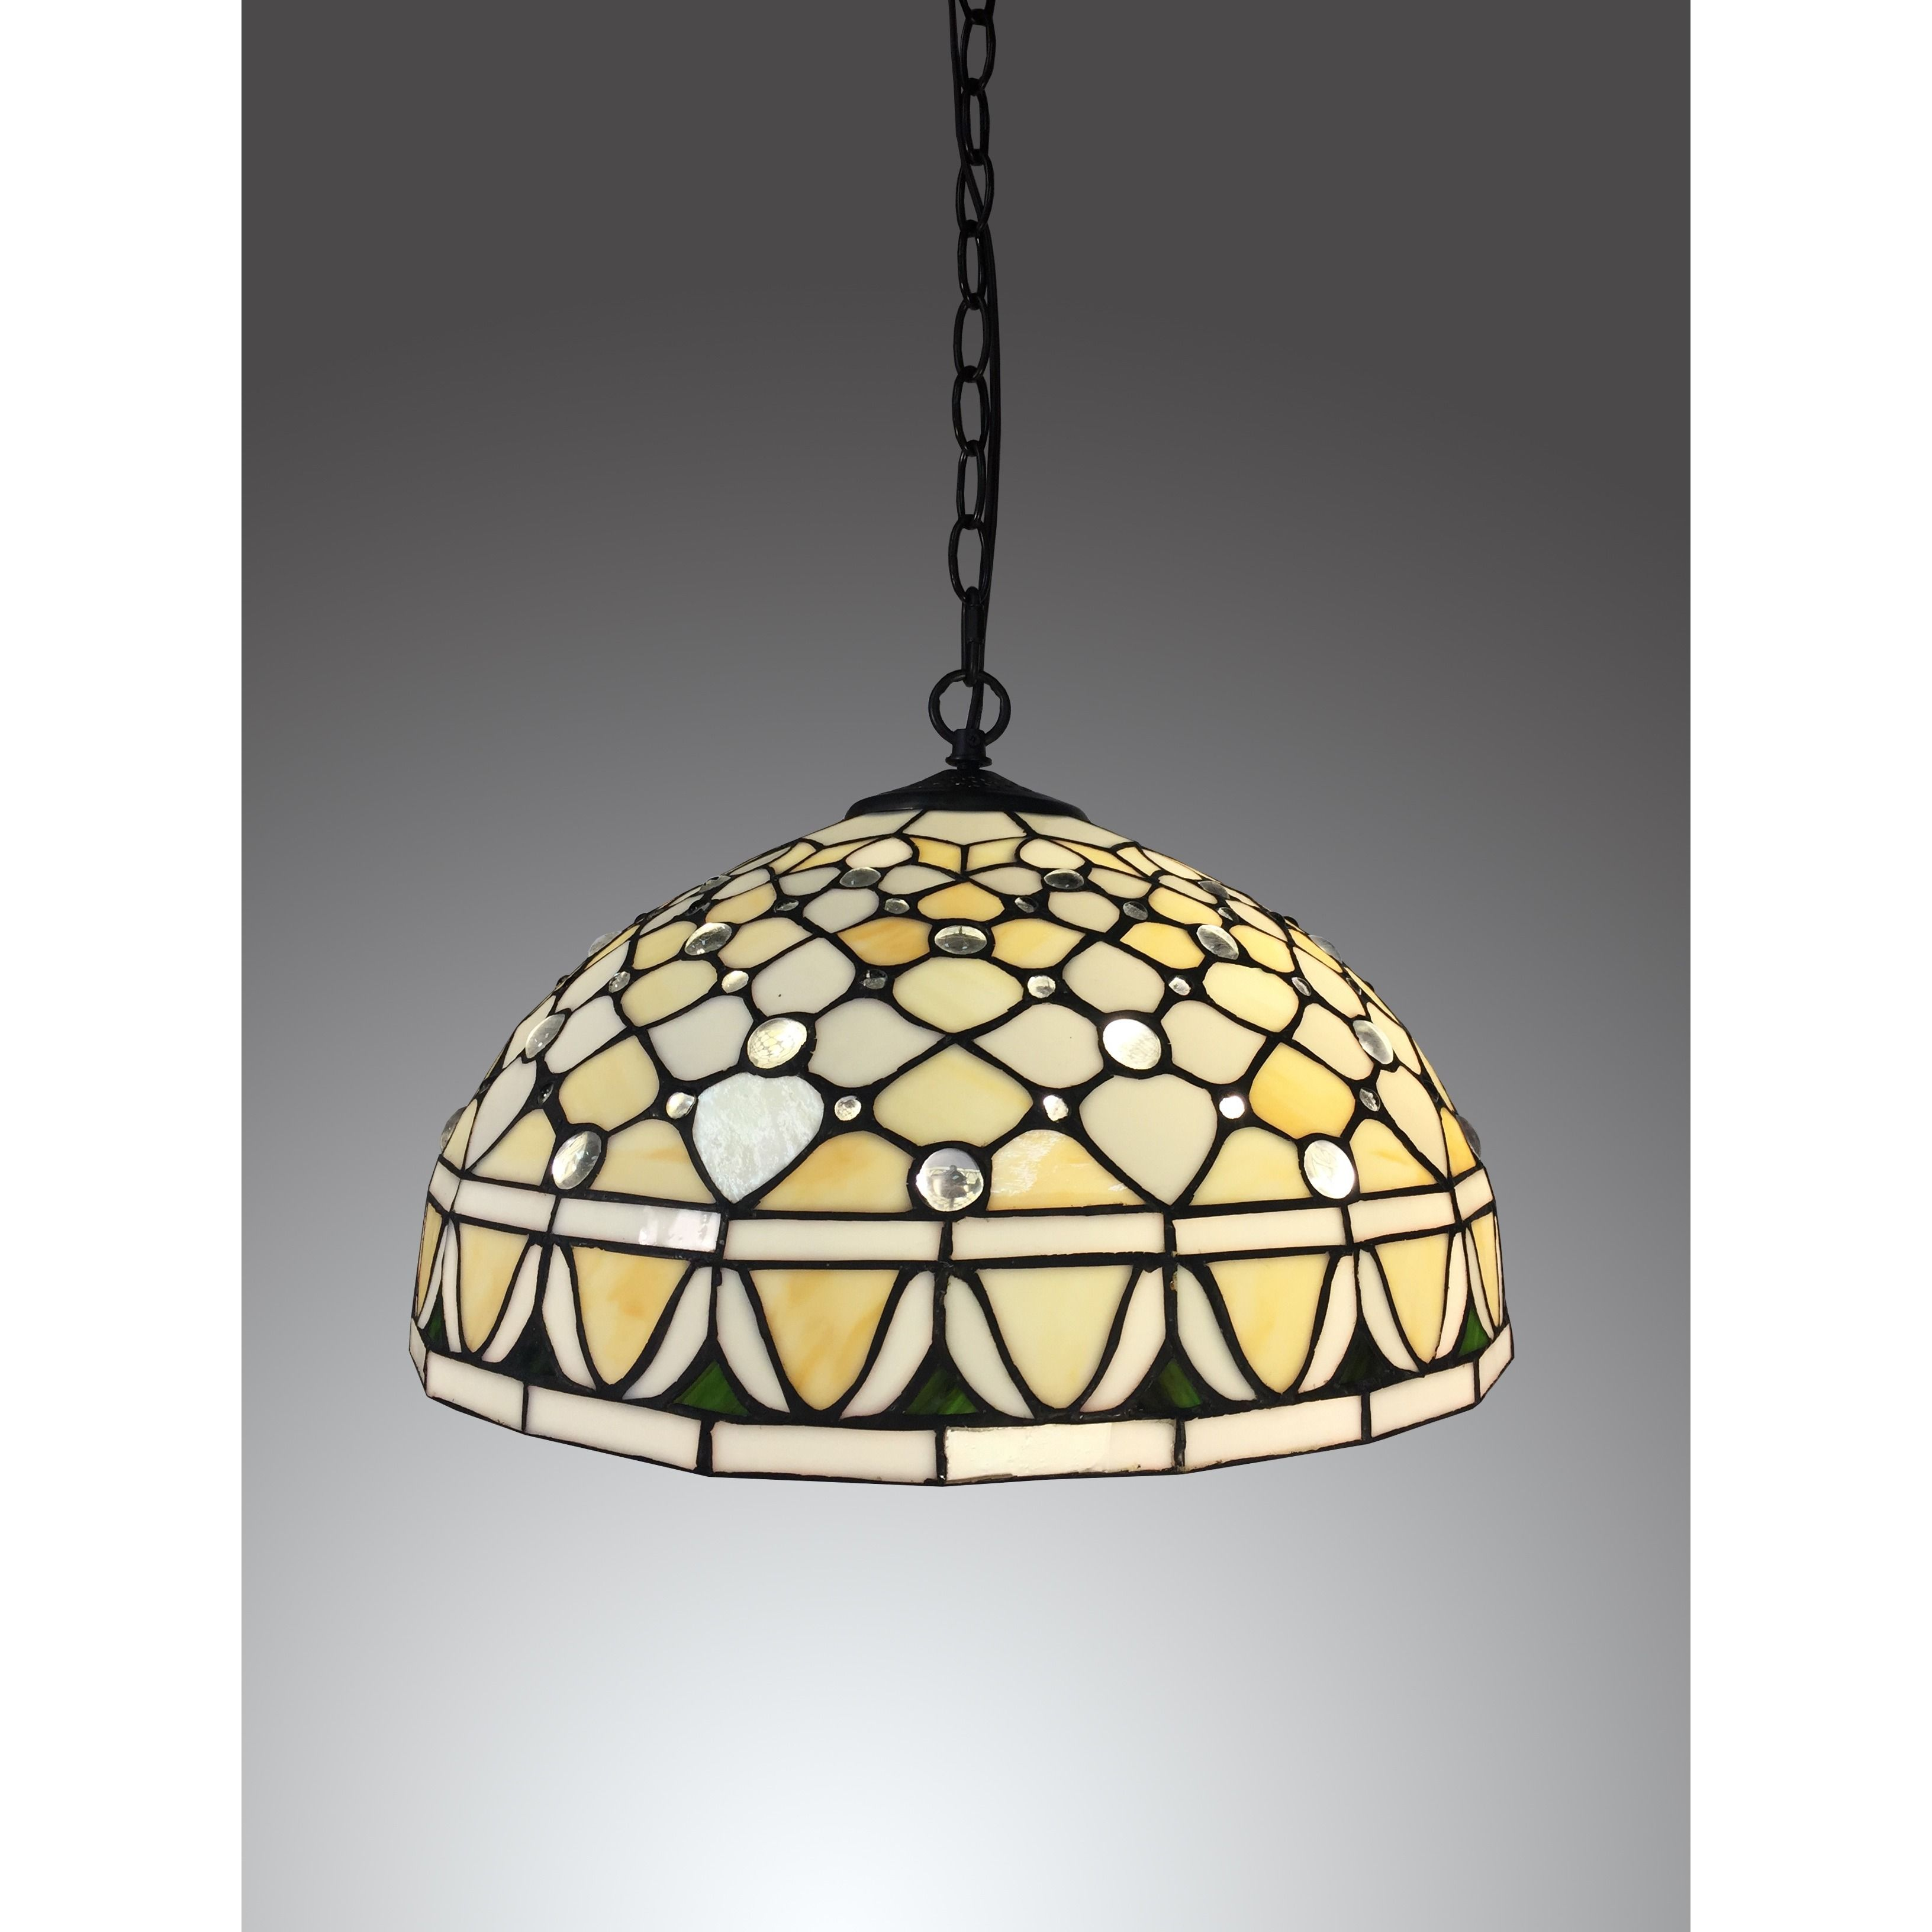 This Tiffany Style Lamp Uses A Hanging Chain And Wire To Suspend Above  Tables,